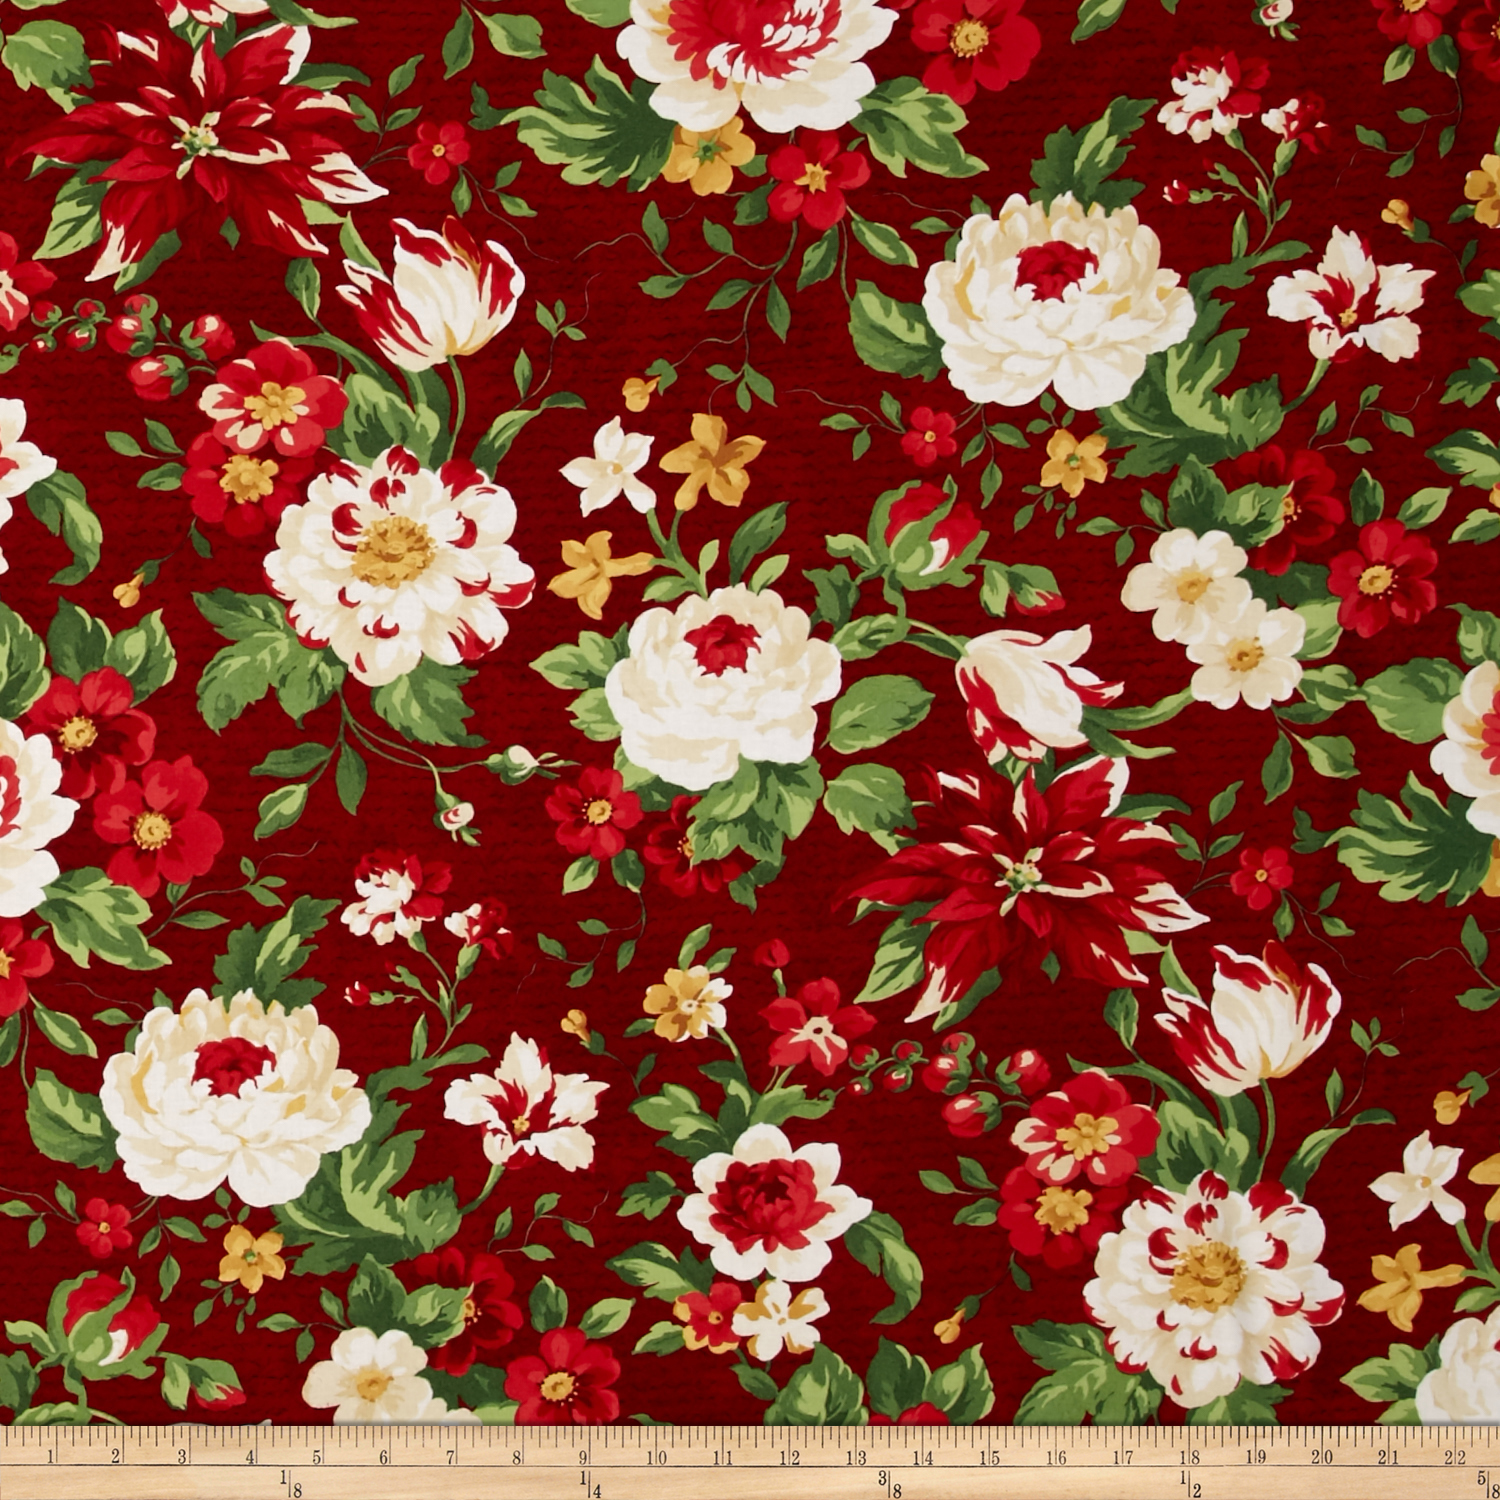 Crimson & Holly Large Floral Red Fabric by MM Fab in USA